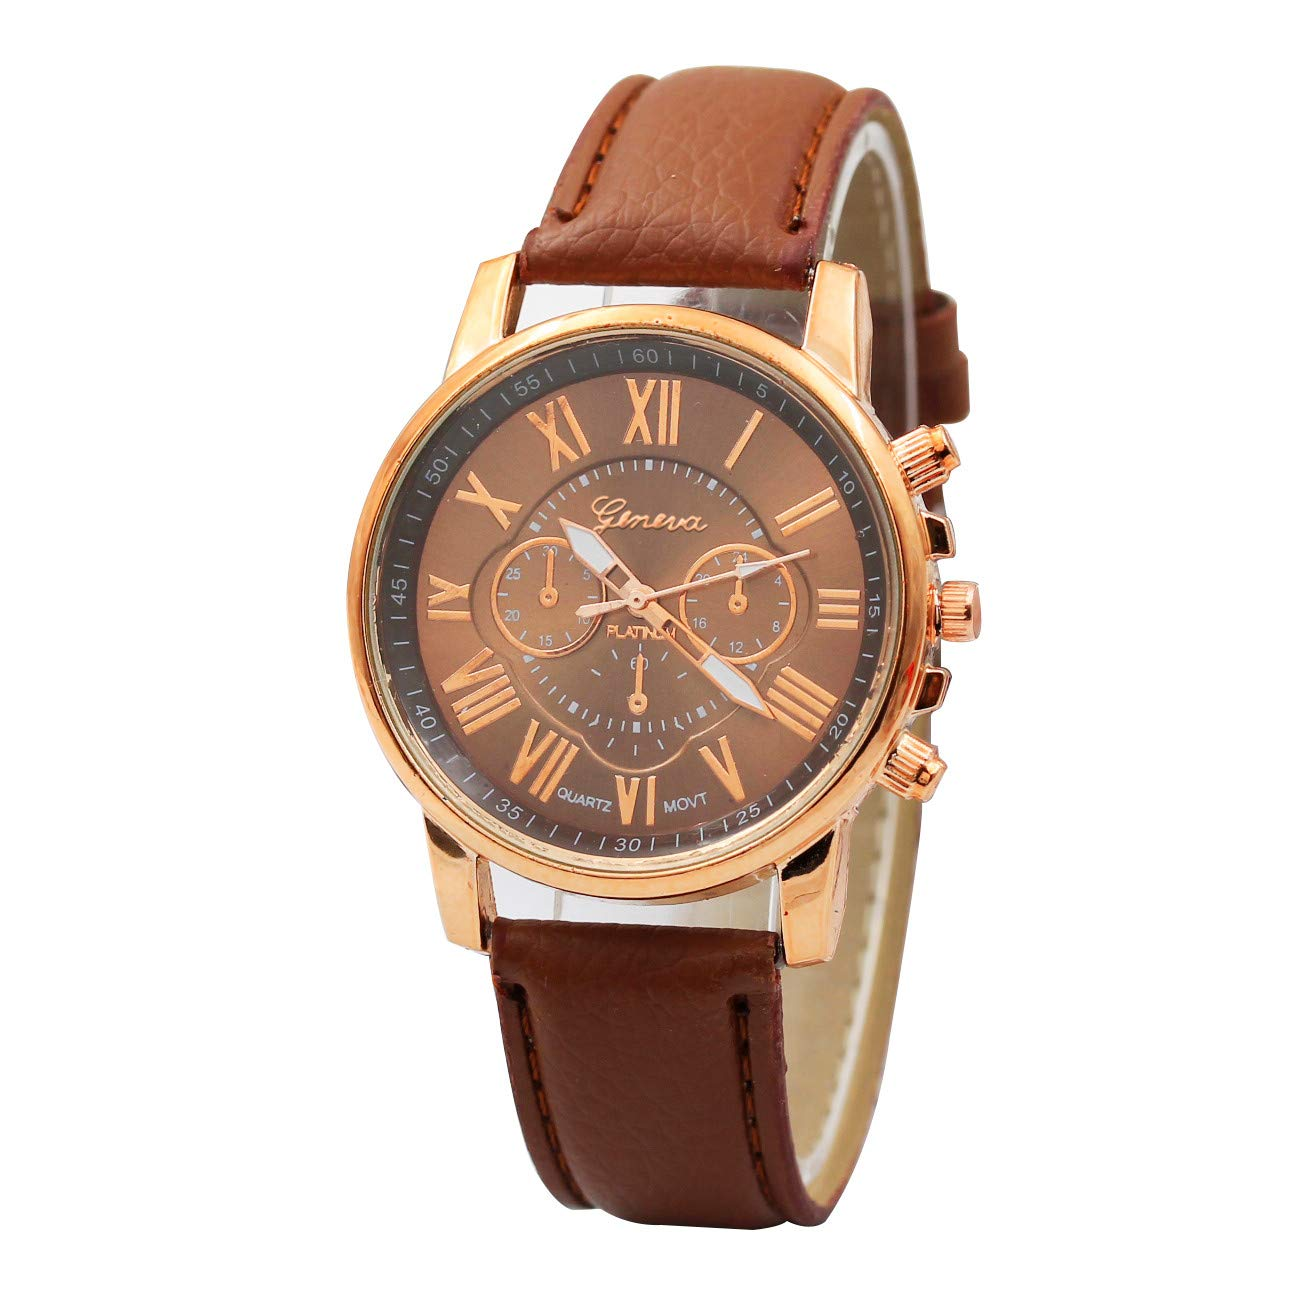 Star_wuvi Women's Indiglo Easy Reader Quartz Analog Leather Strap Watch with Date Feature